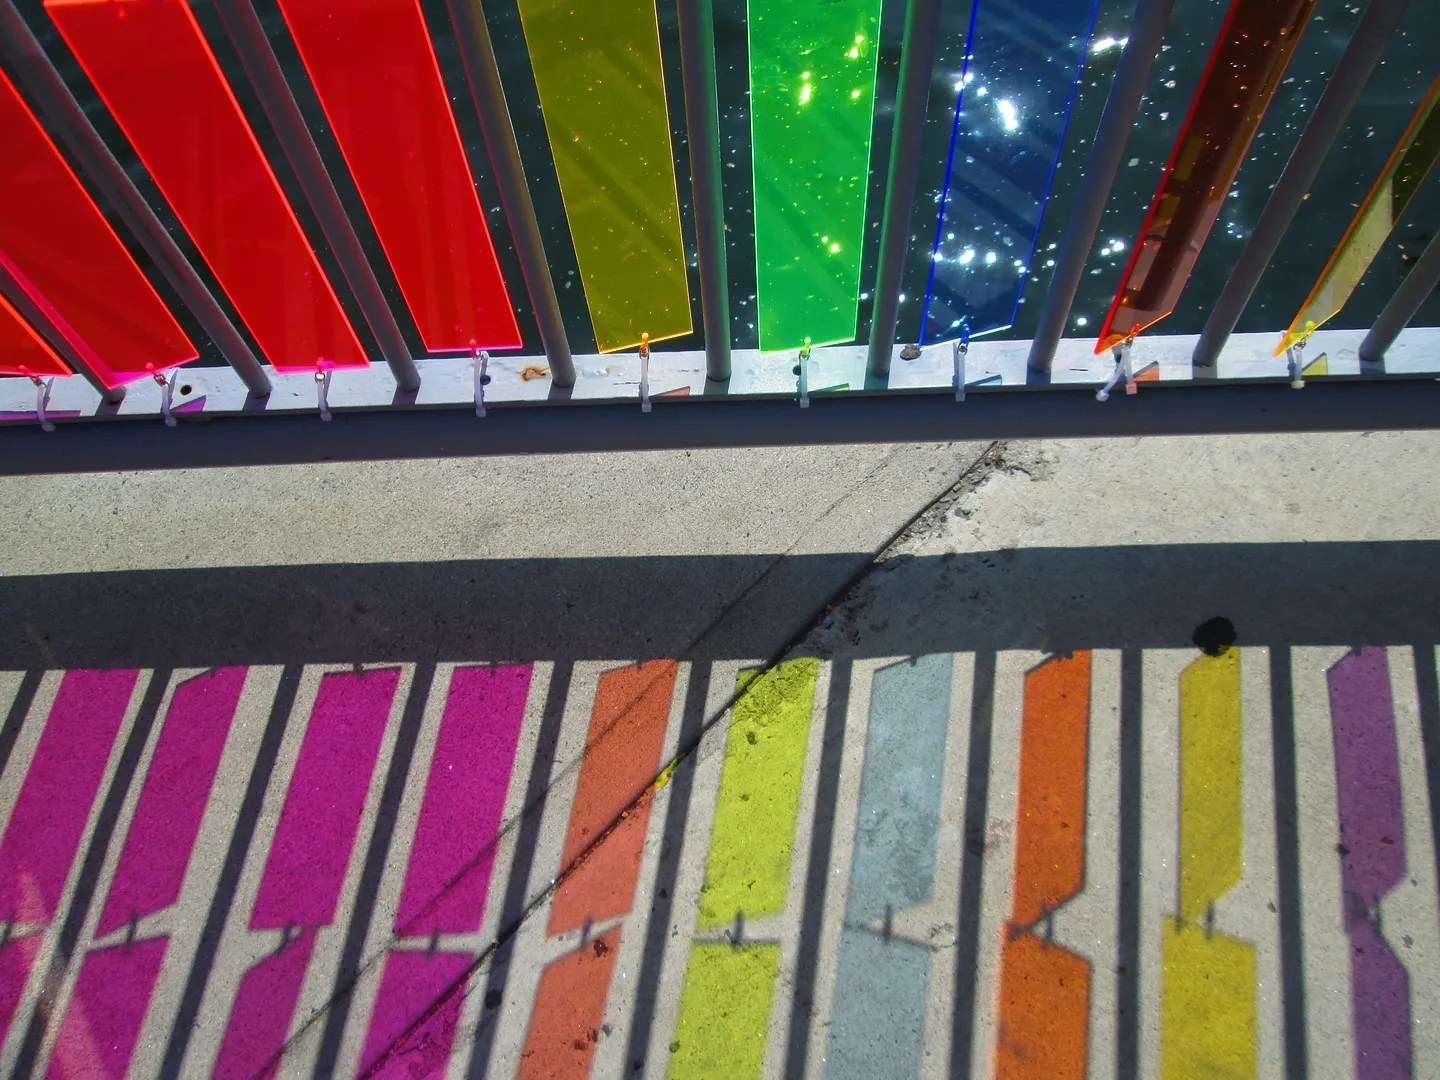 close-up of rainbow plexiglass panels and their reflections on the sidewalk